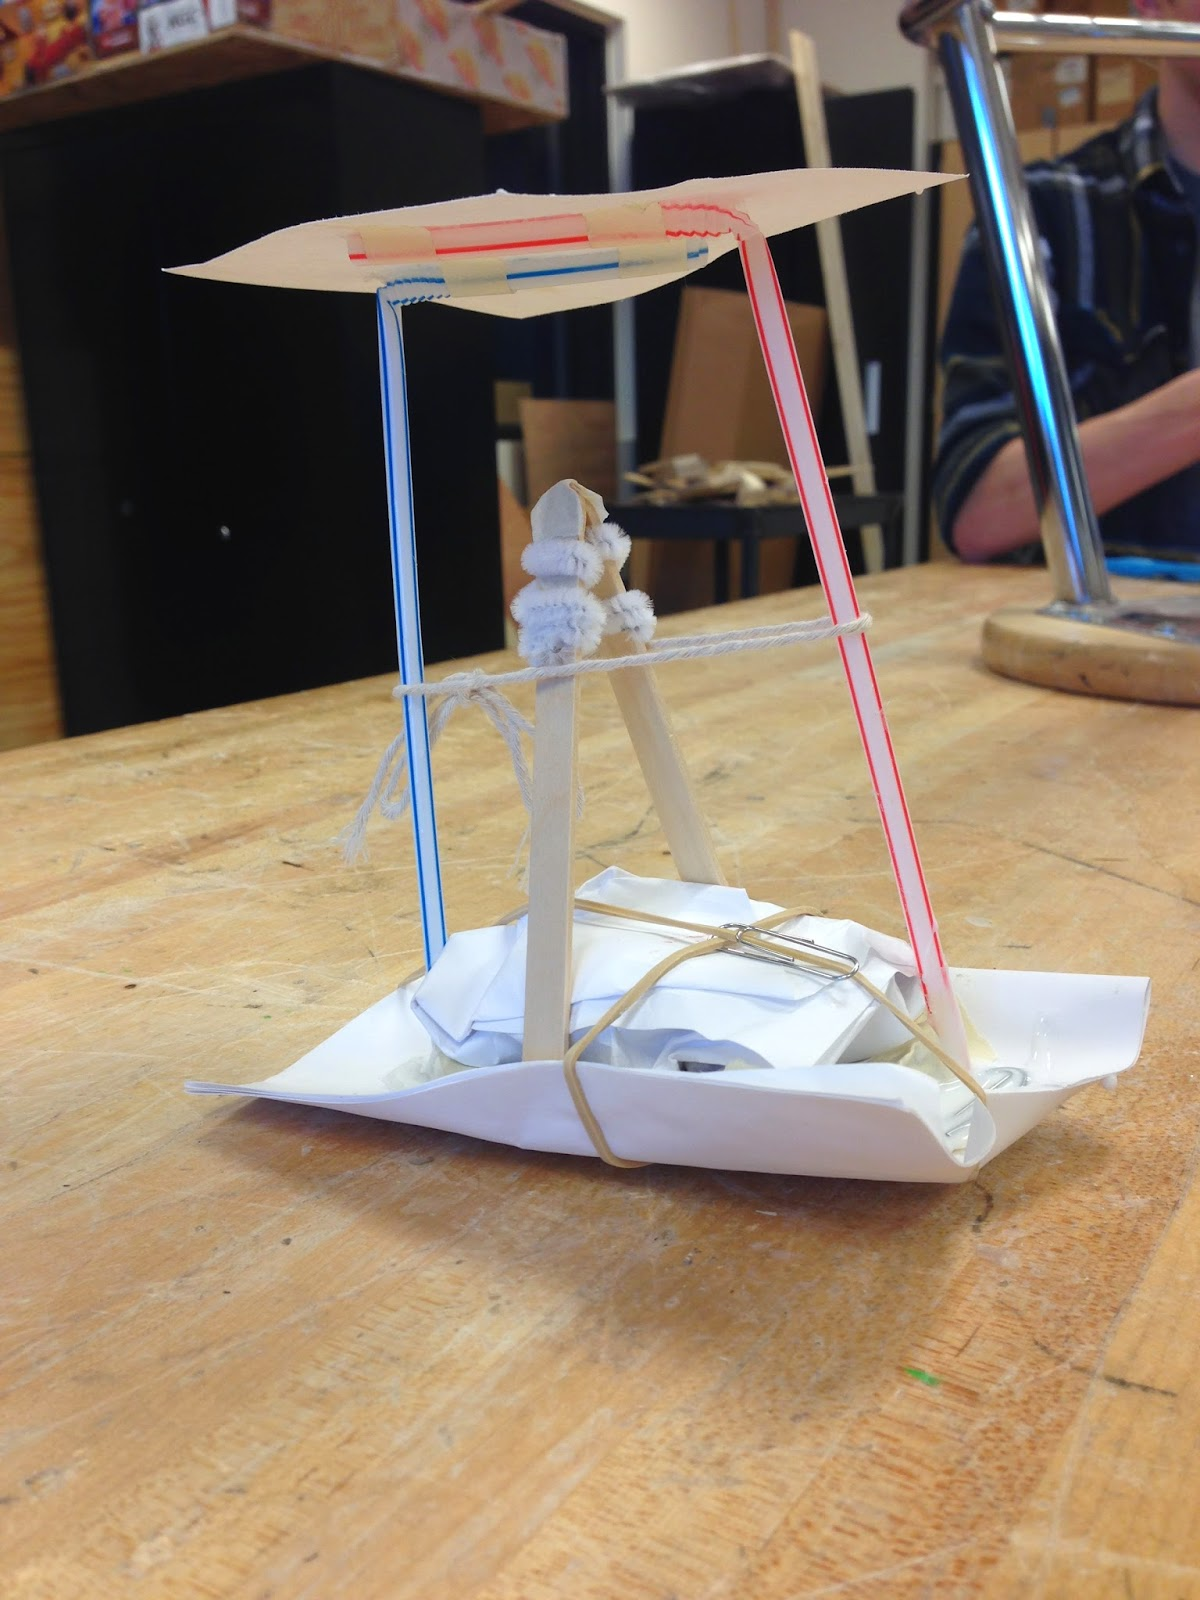 egg drop project essays When you drop the egg, the strings that are attached to the sandwich bag pull down and this open the bag to full size, which creates a large surface area and more wind resistance more wind resistance slows down the descent of the egg you can explain the results of this experiment with the concept.